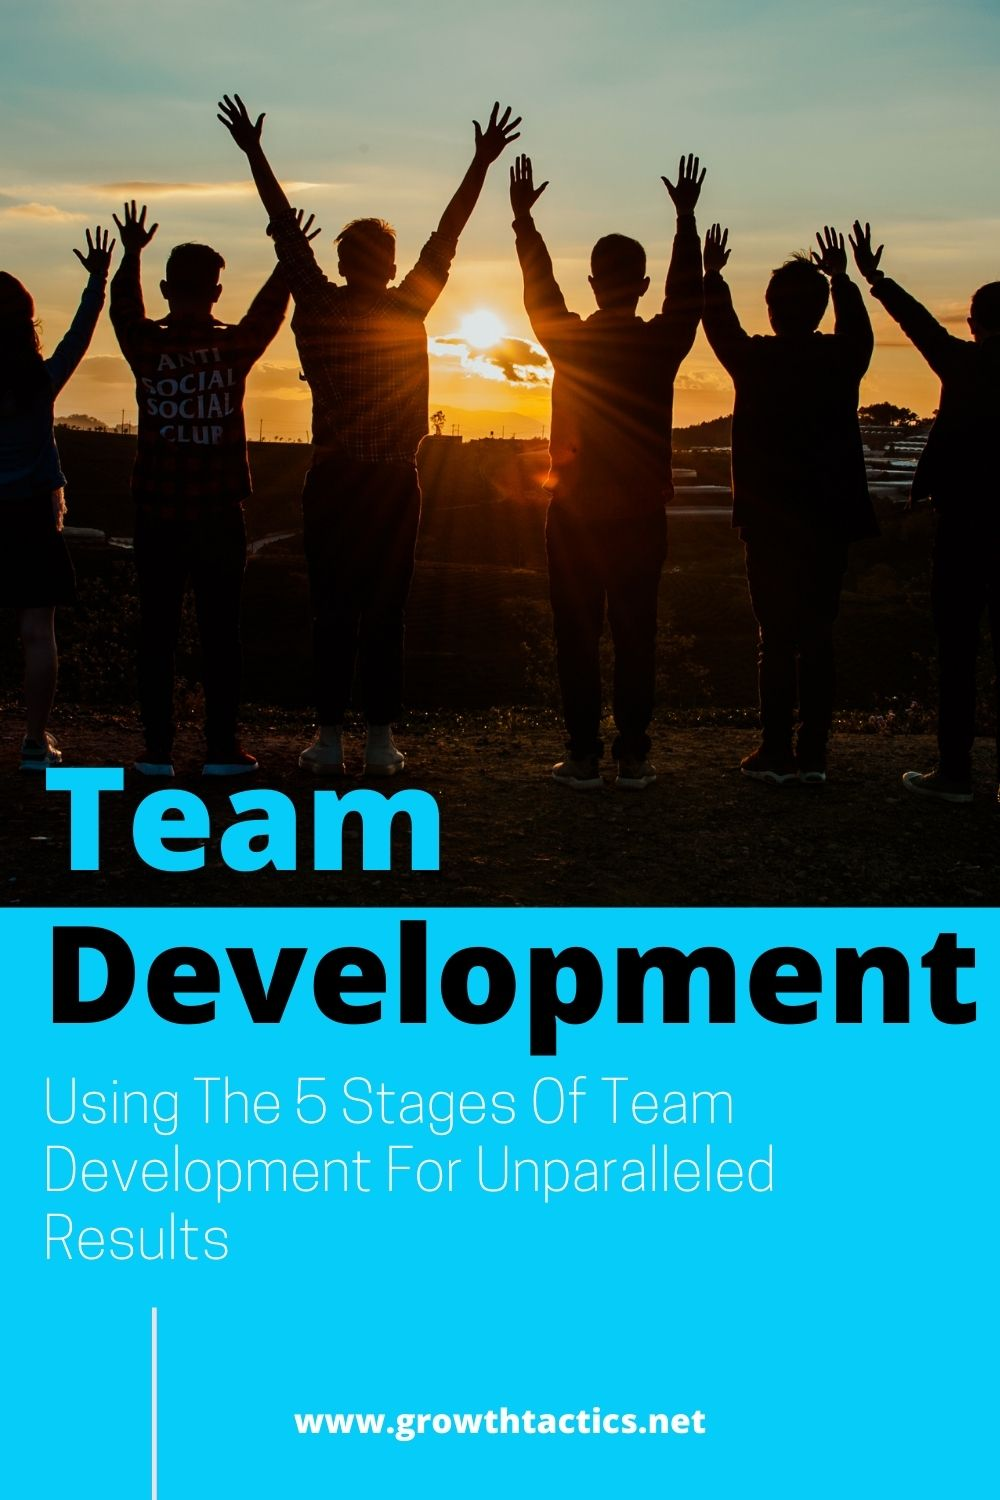 Using The 5 Stages Of Team Development For Unparalleled Results